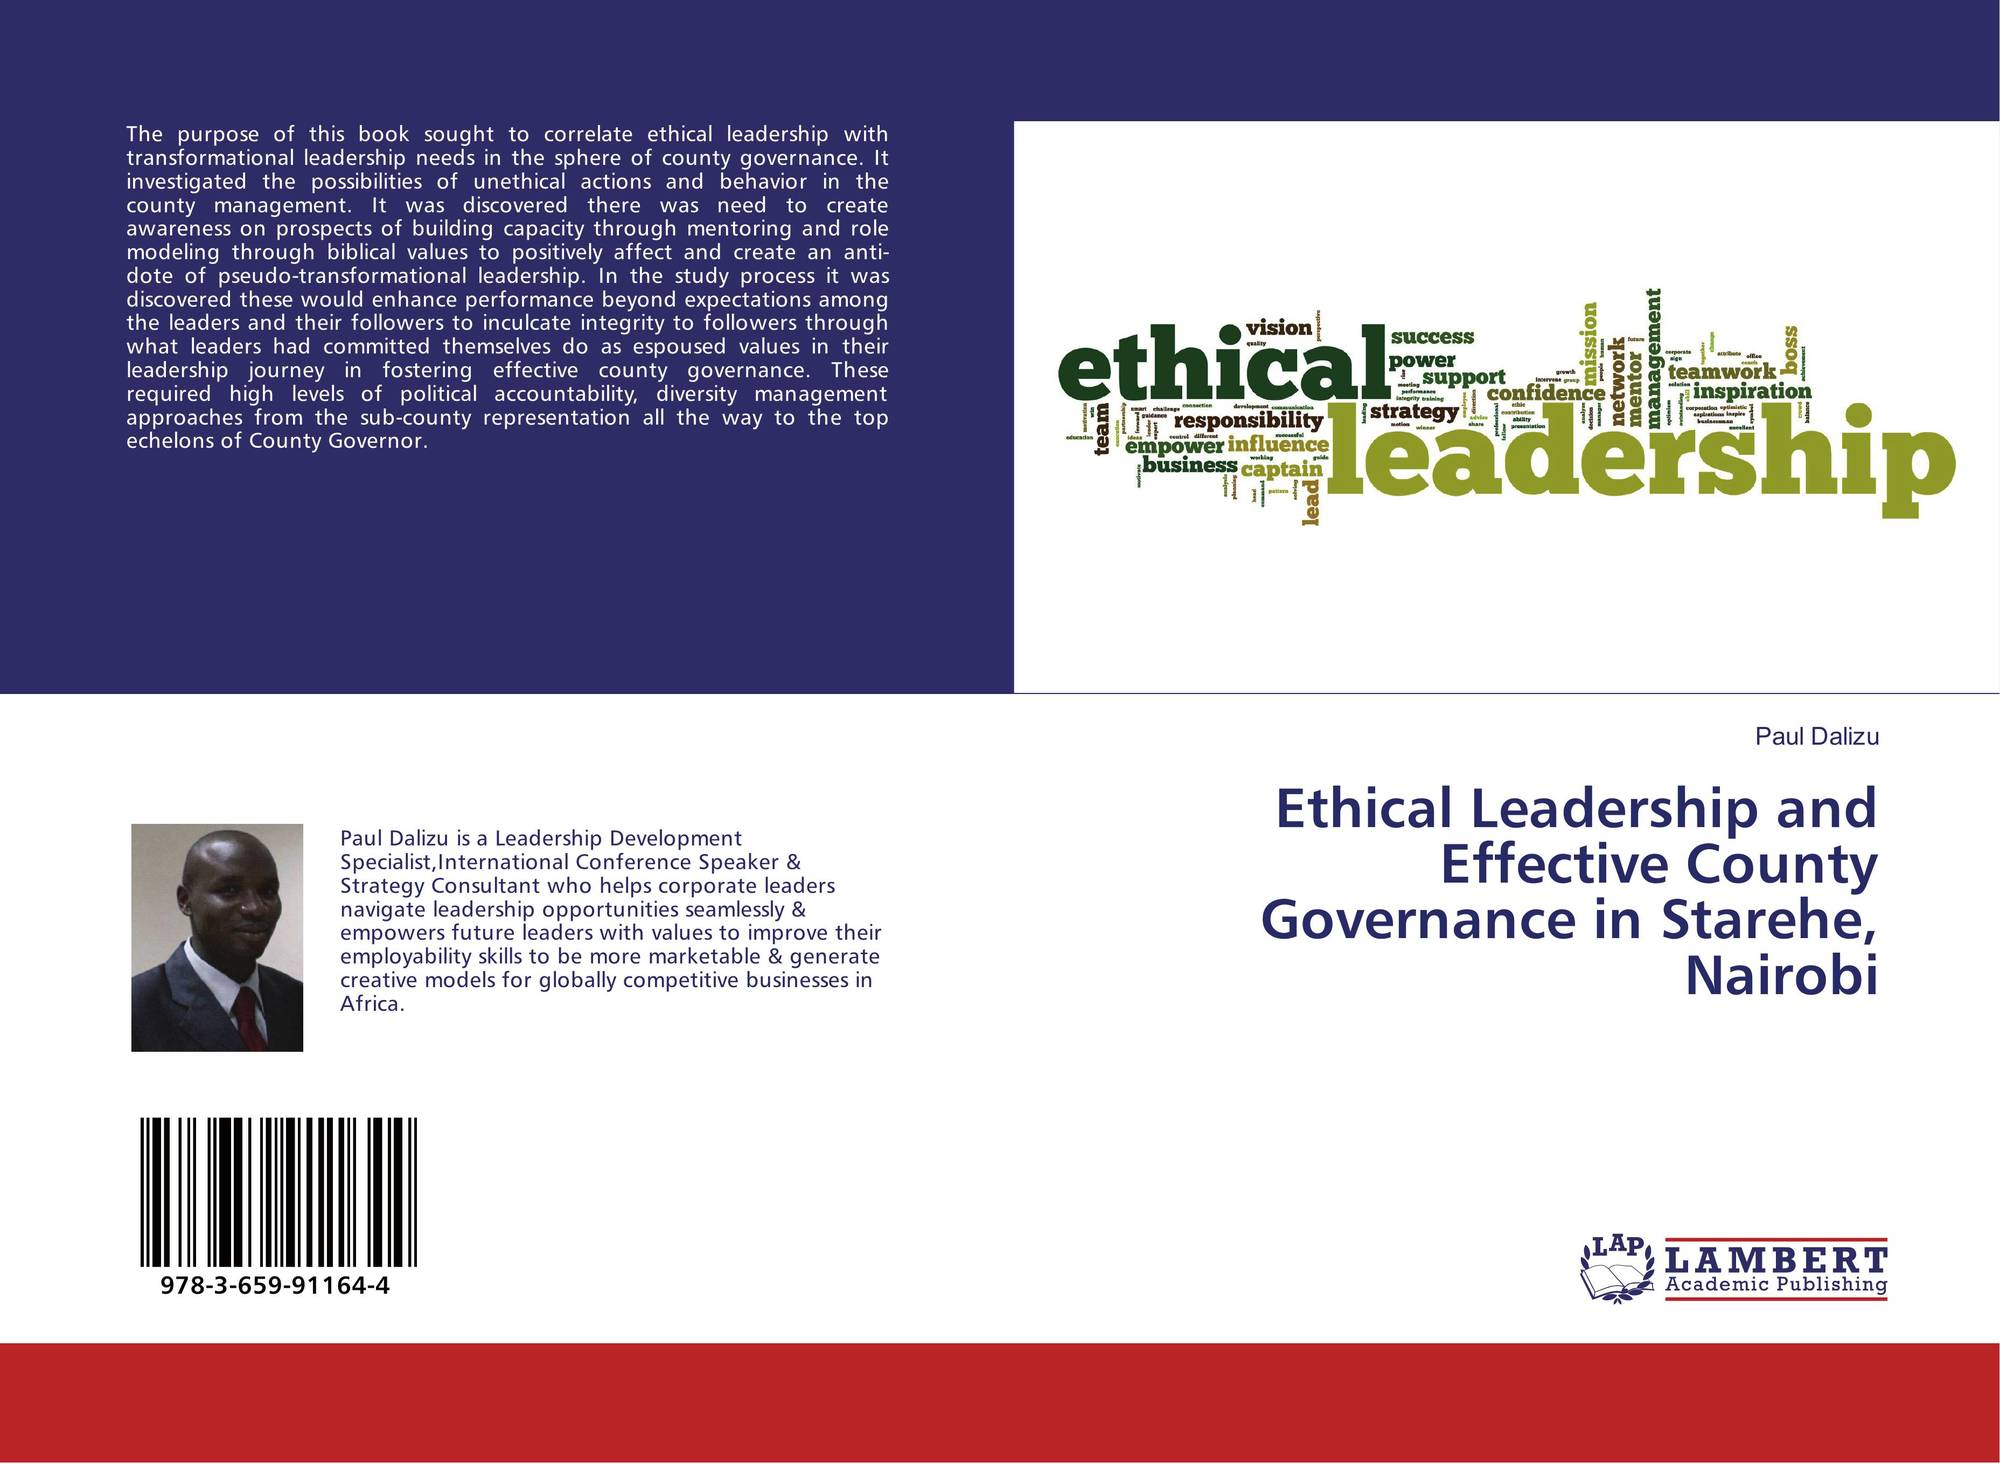 ethical and governance issues raised Research ethics and governance (reg) is committed to supporting research that improves the health and wellbeing of children and young people our department oversees research that is conducted in or by the melbourne children's campus the campus includes the royal children's hospital (rch.